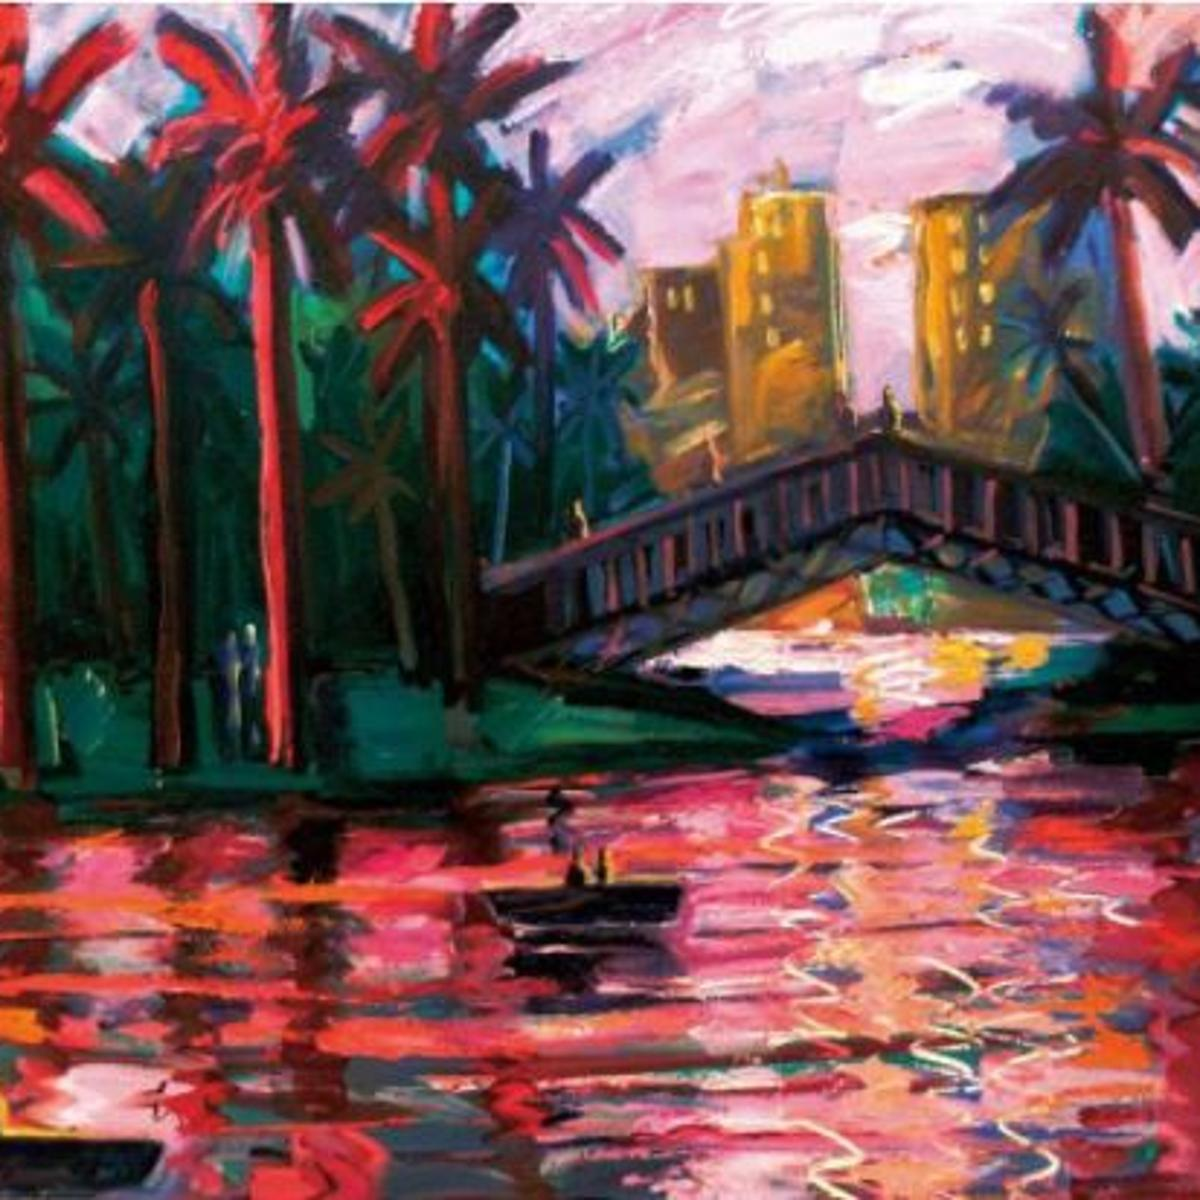 The Echo Park Of Painter Carlos Almaraz There S A Deeper More Mysterious Element Arts Culture Theeastsiderla Com